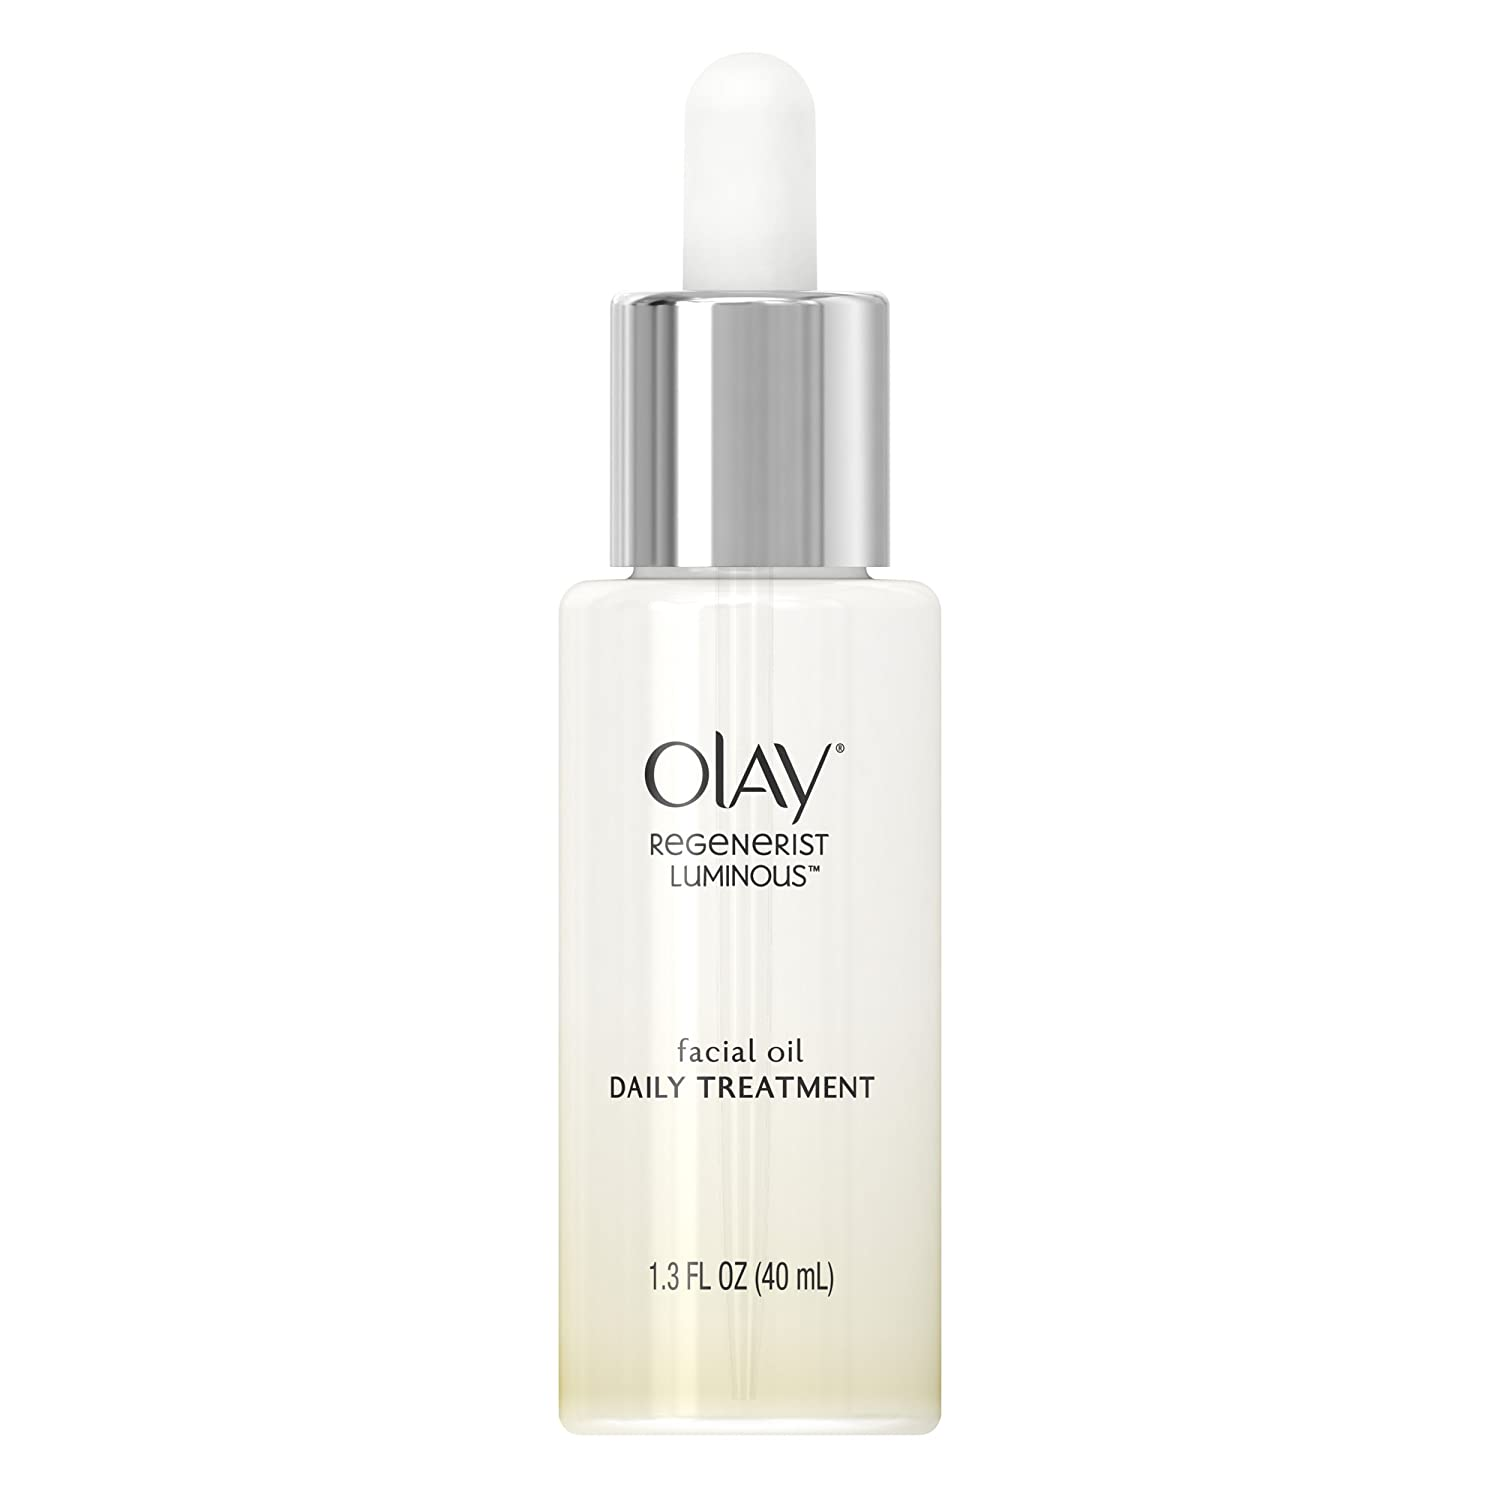 Olay Regenerist Luminous Facial Oil, 1.3 Fl Oz by Olay NA